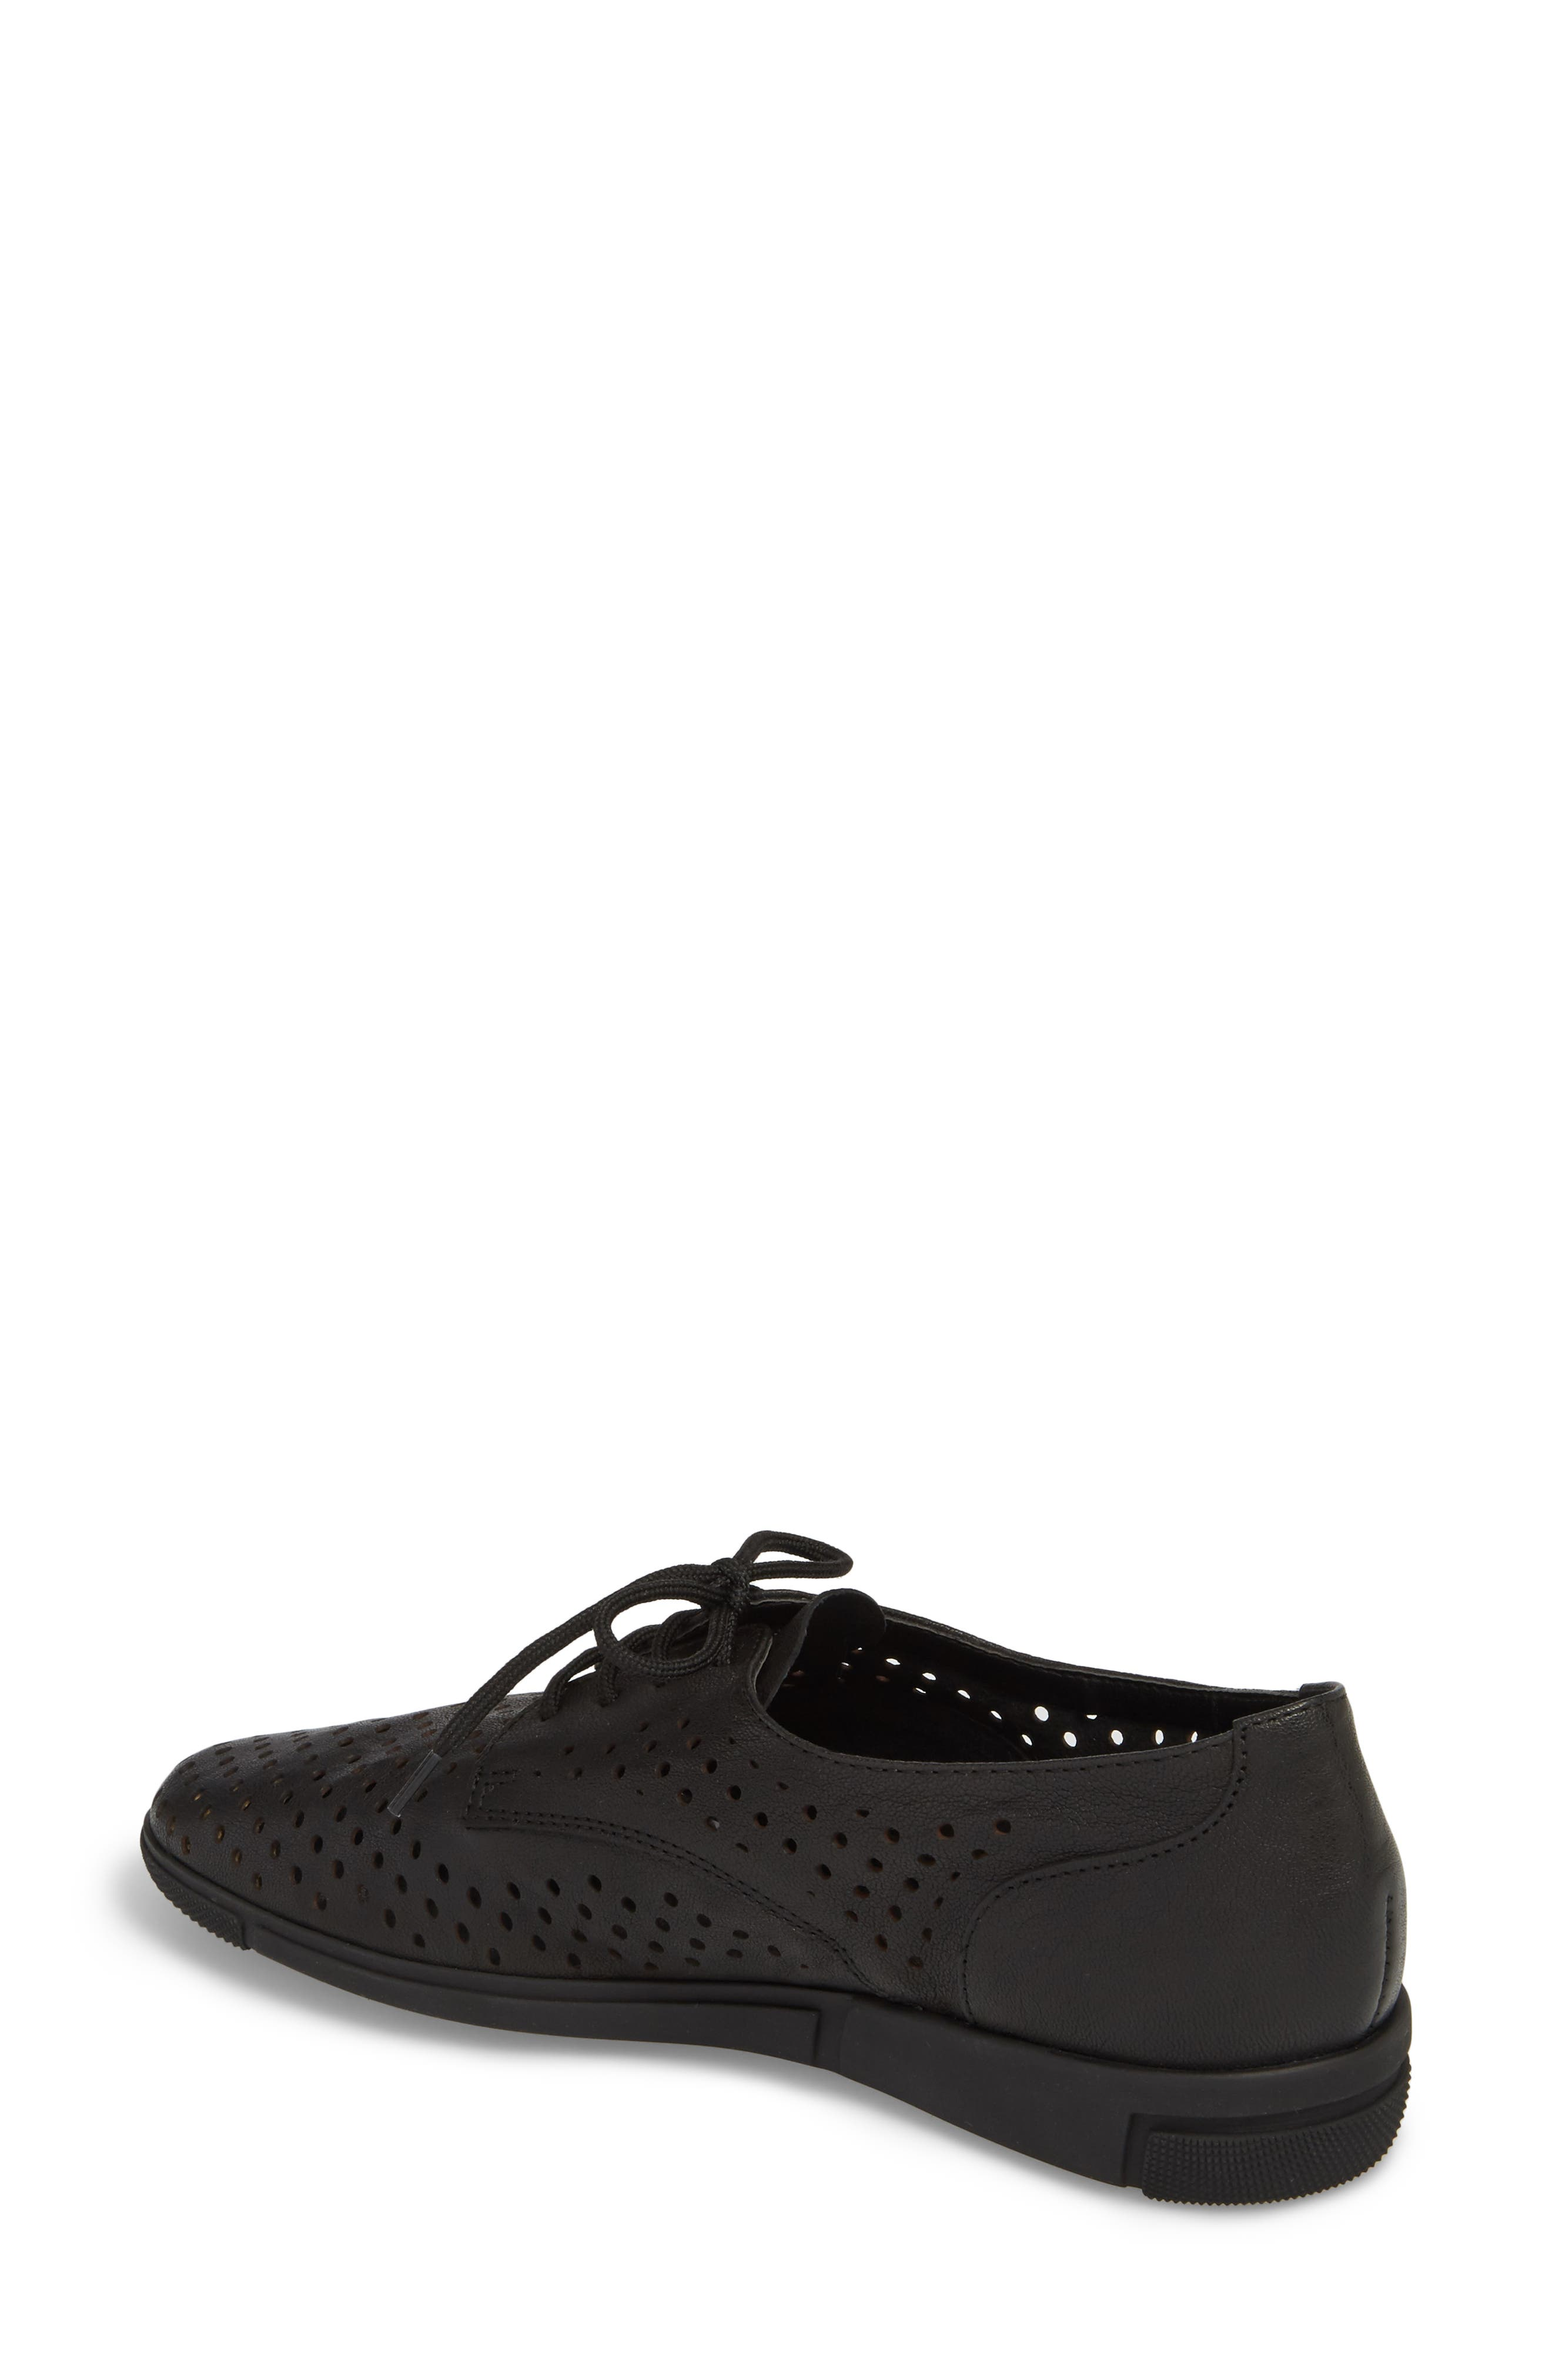 Dirce Perforated Oxford Flat,                             Alternate thumbnail 2, color,                             Black Leather